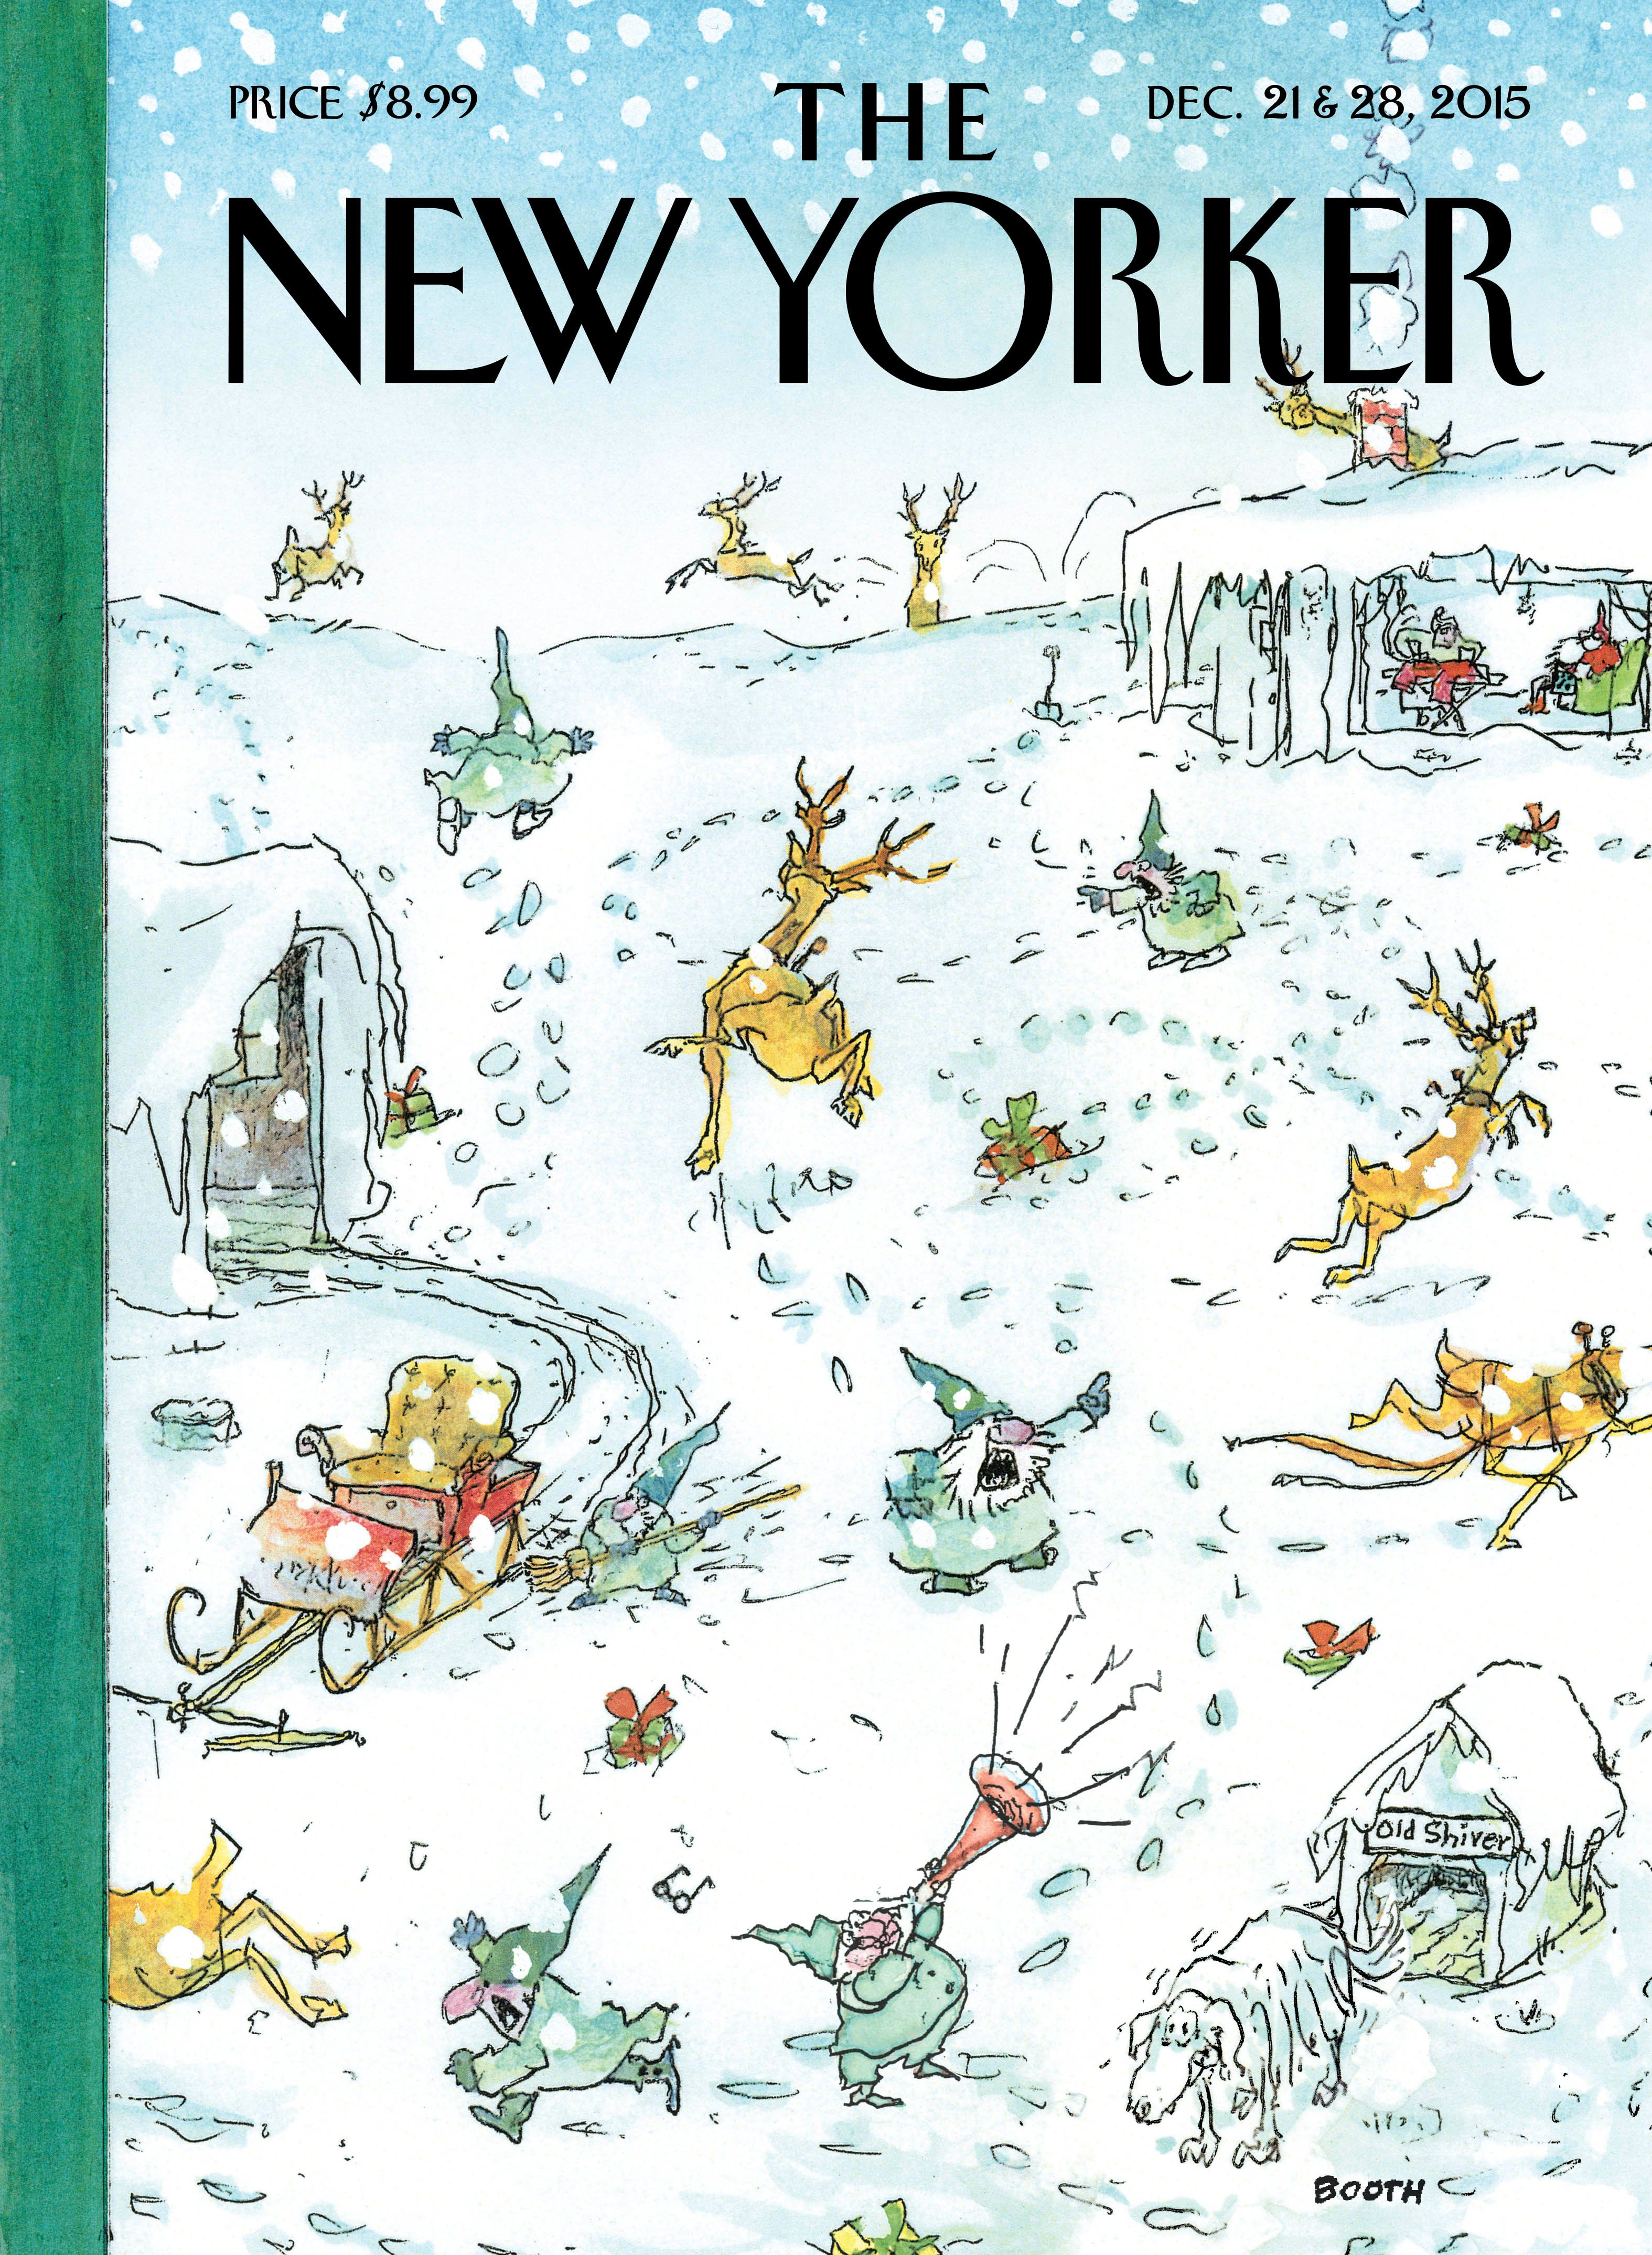 The New Yorker December 21 28 2015 Issue New Yorker Covers The New Yorker Spirited Art